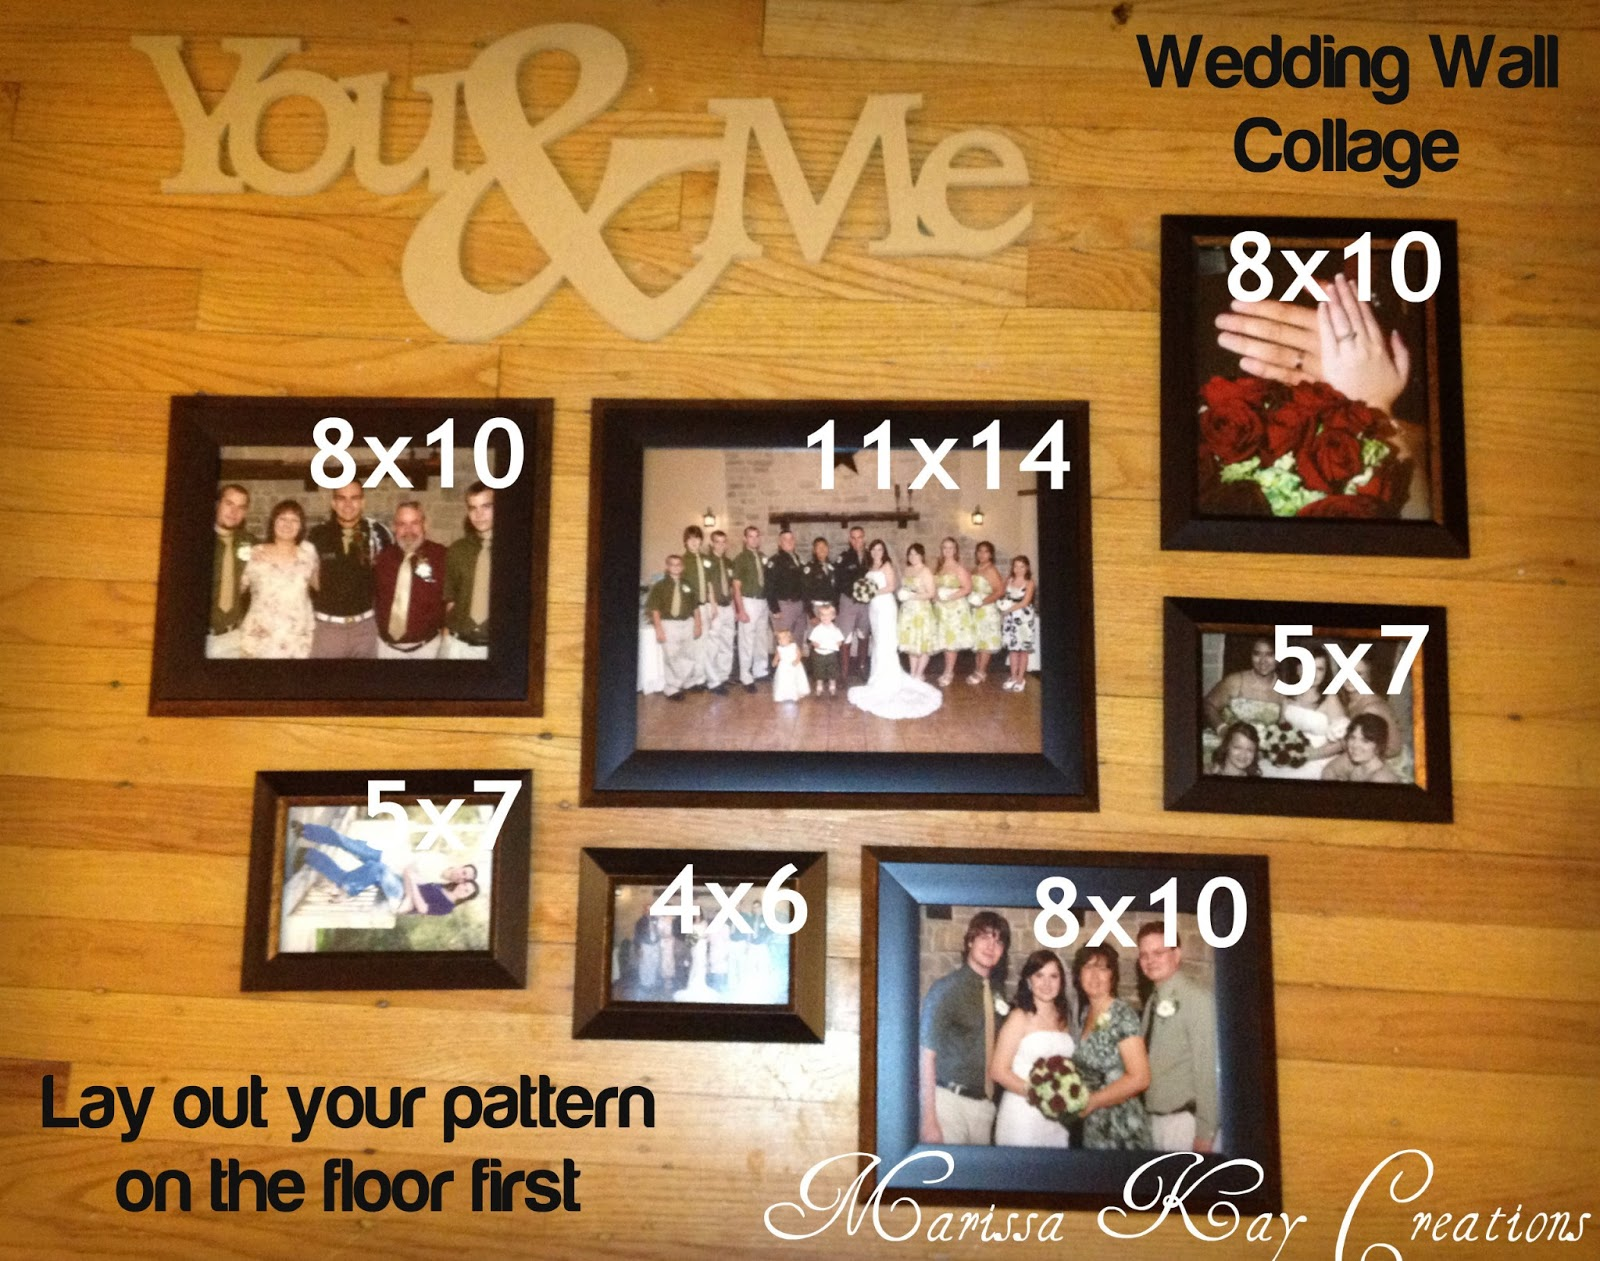 Marissa Kay Creations Wedding Wall Collage